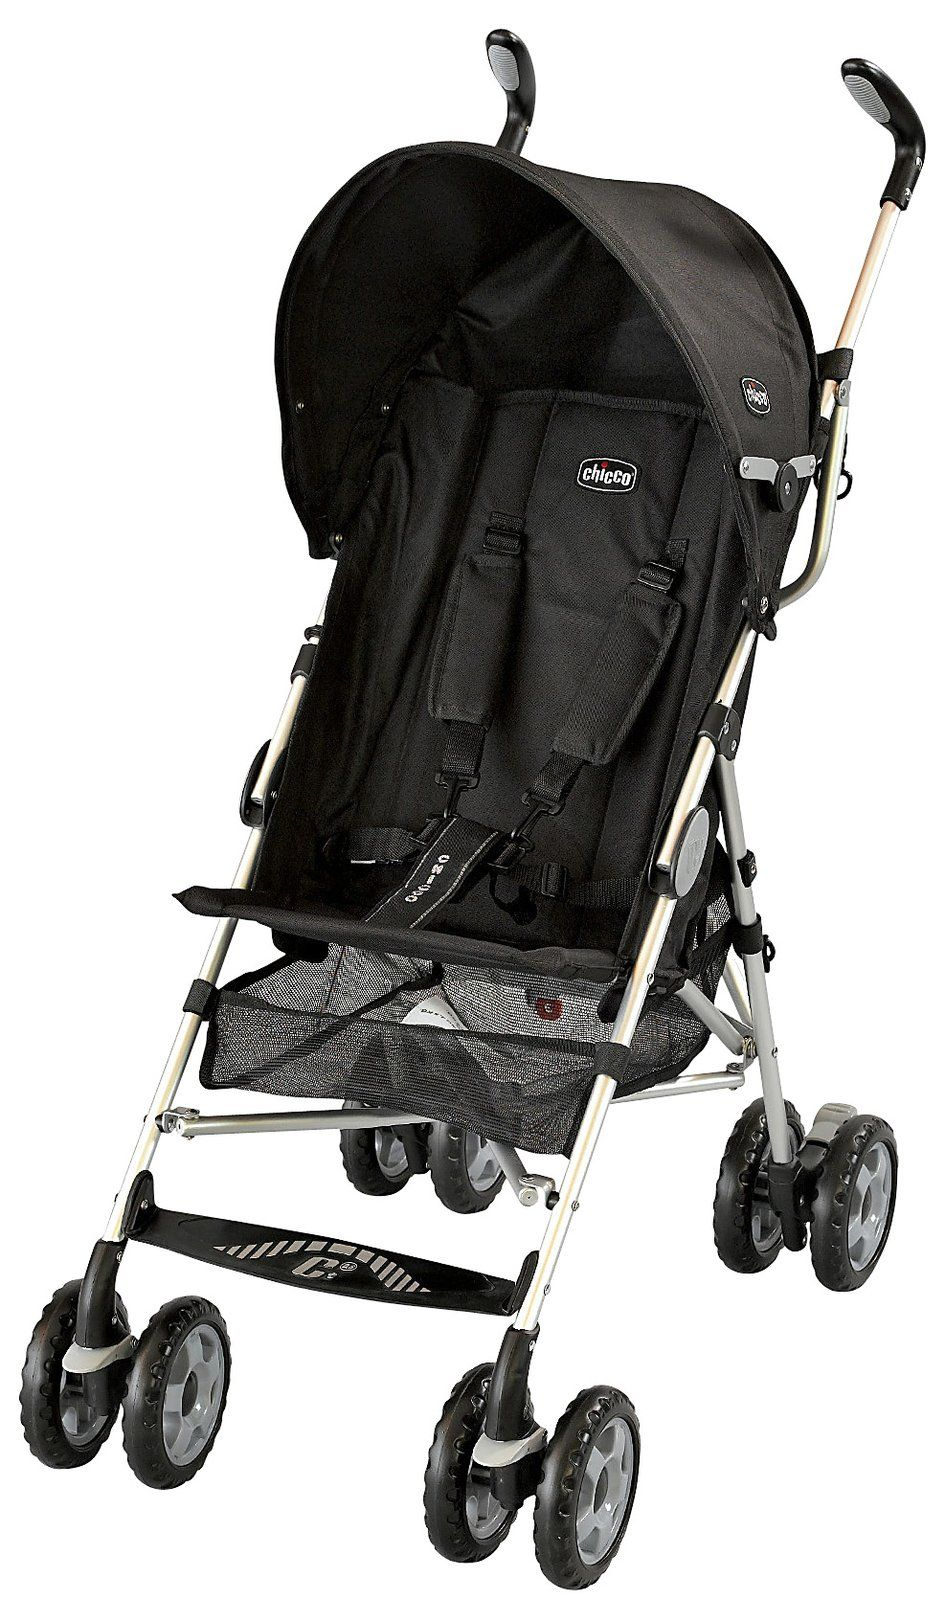 Chicco Ct0.6/Capri Stroller Black (I have it and love it